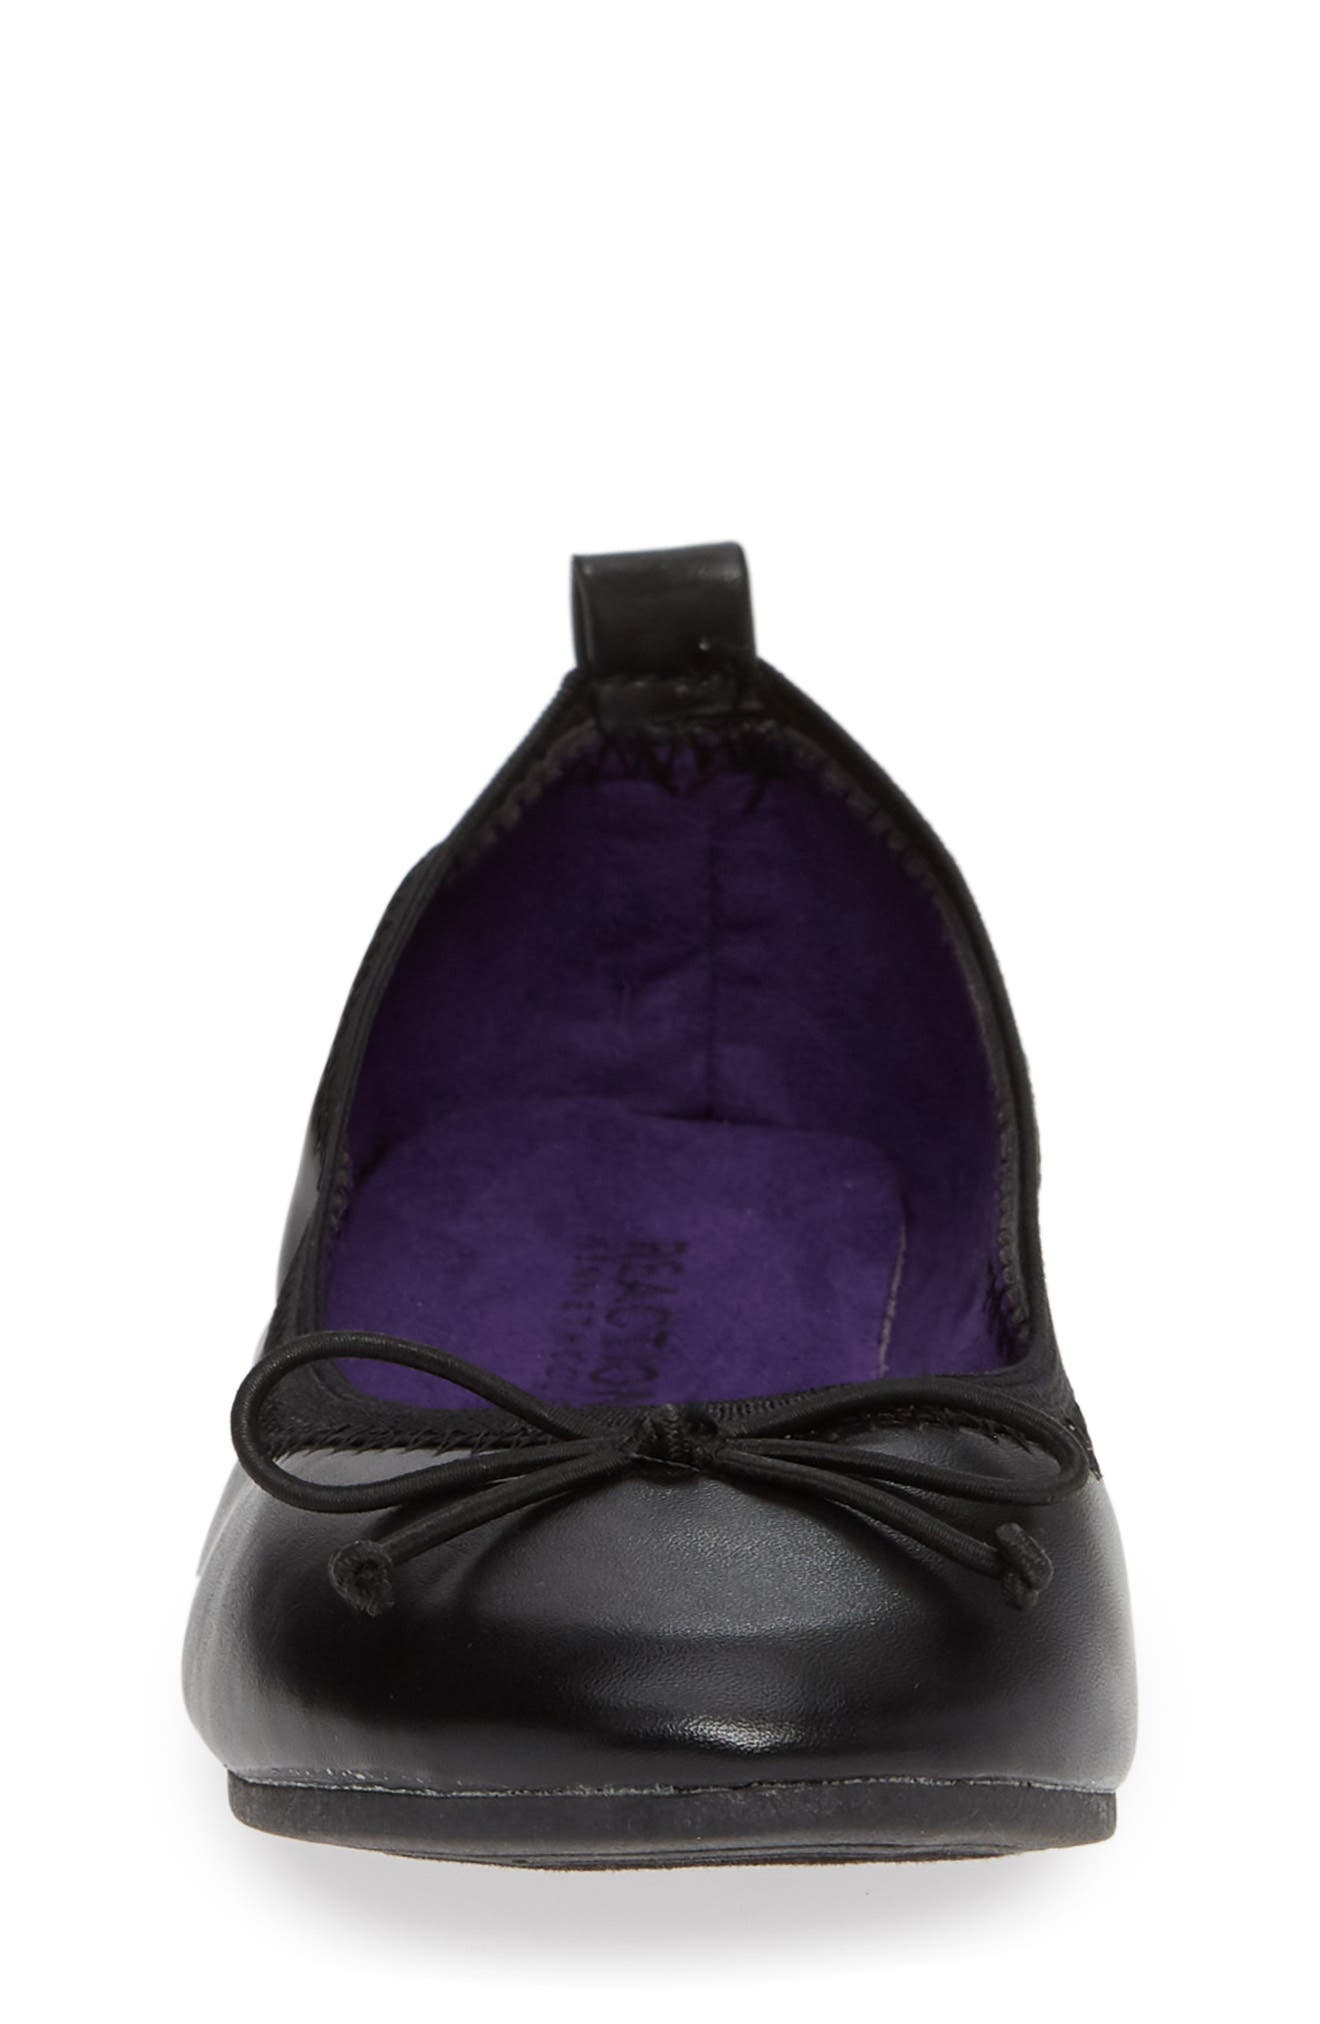 Copy Tap Ballet Flat,                             Alternate thumbnail 4, color,                             BLACK